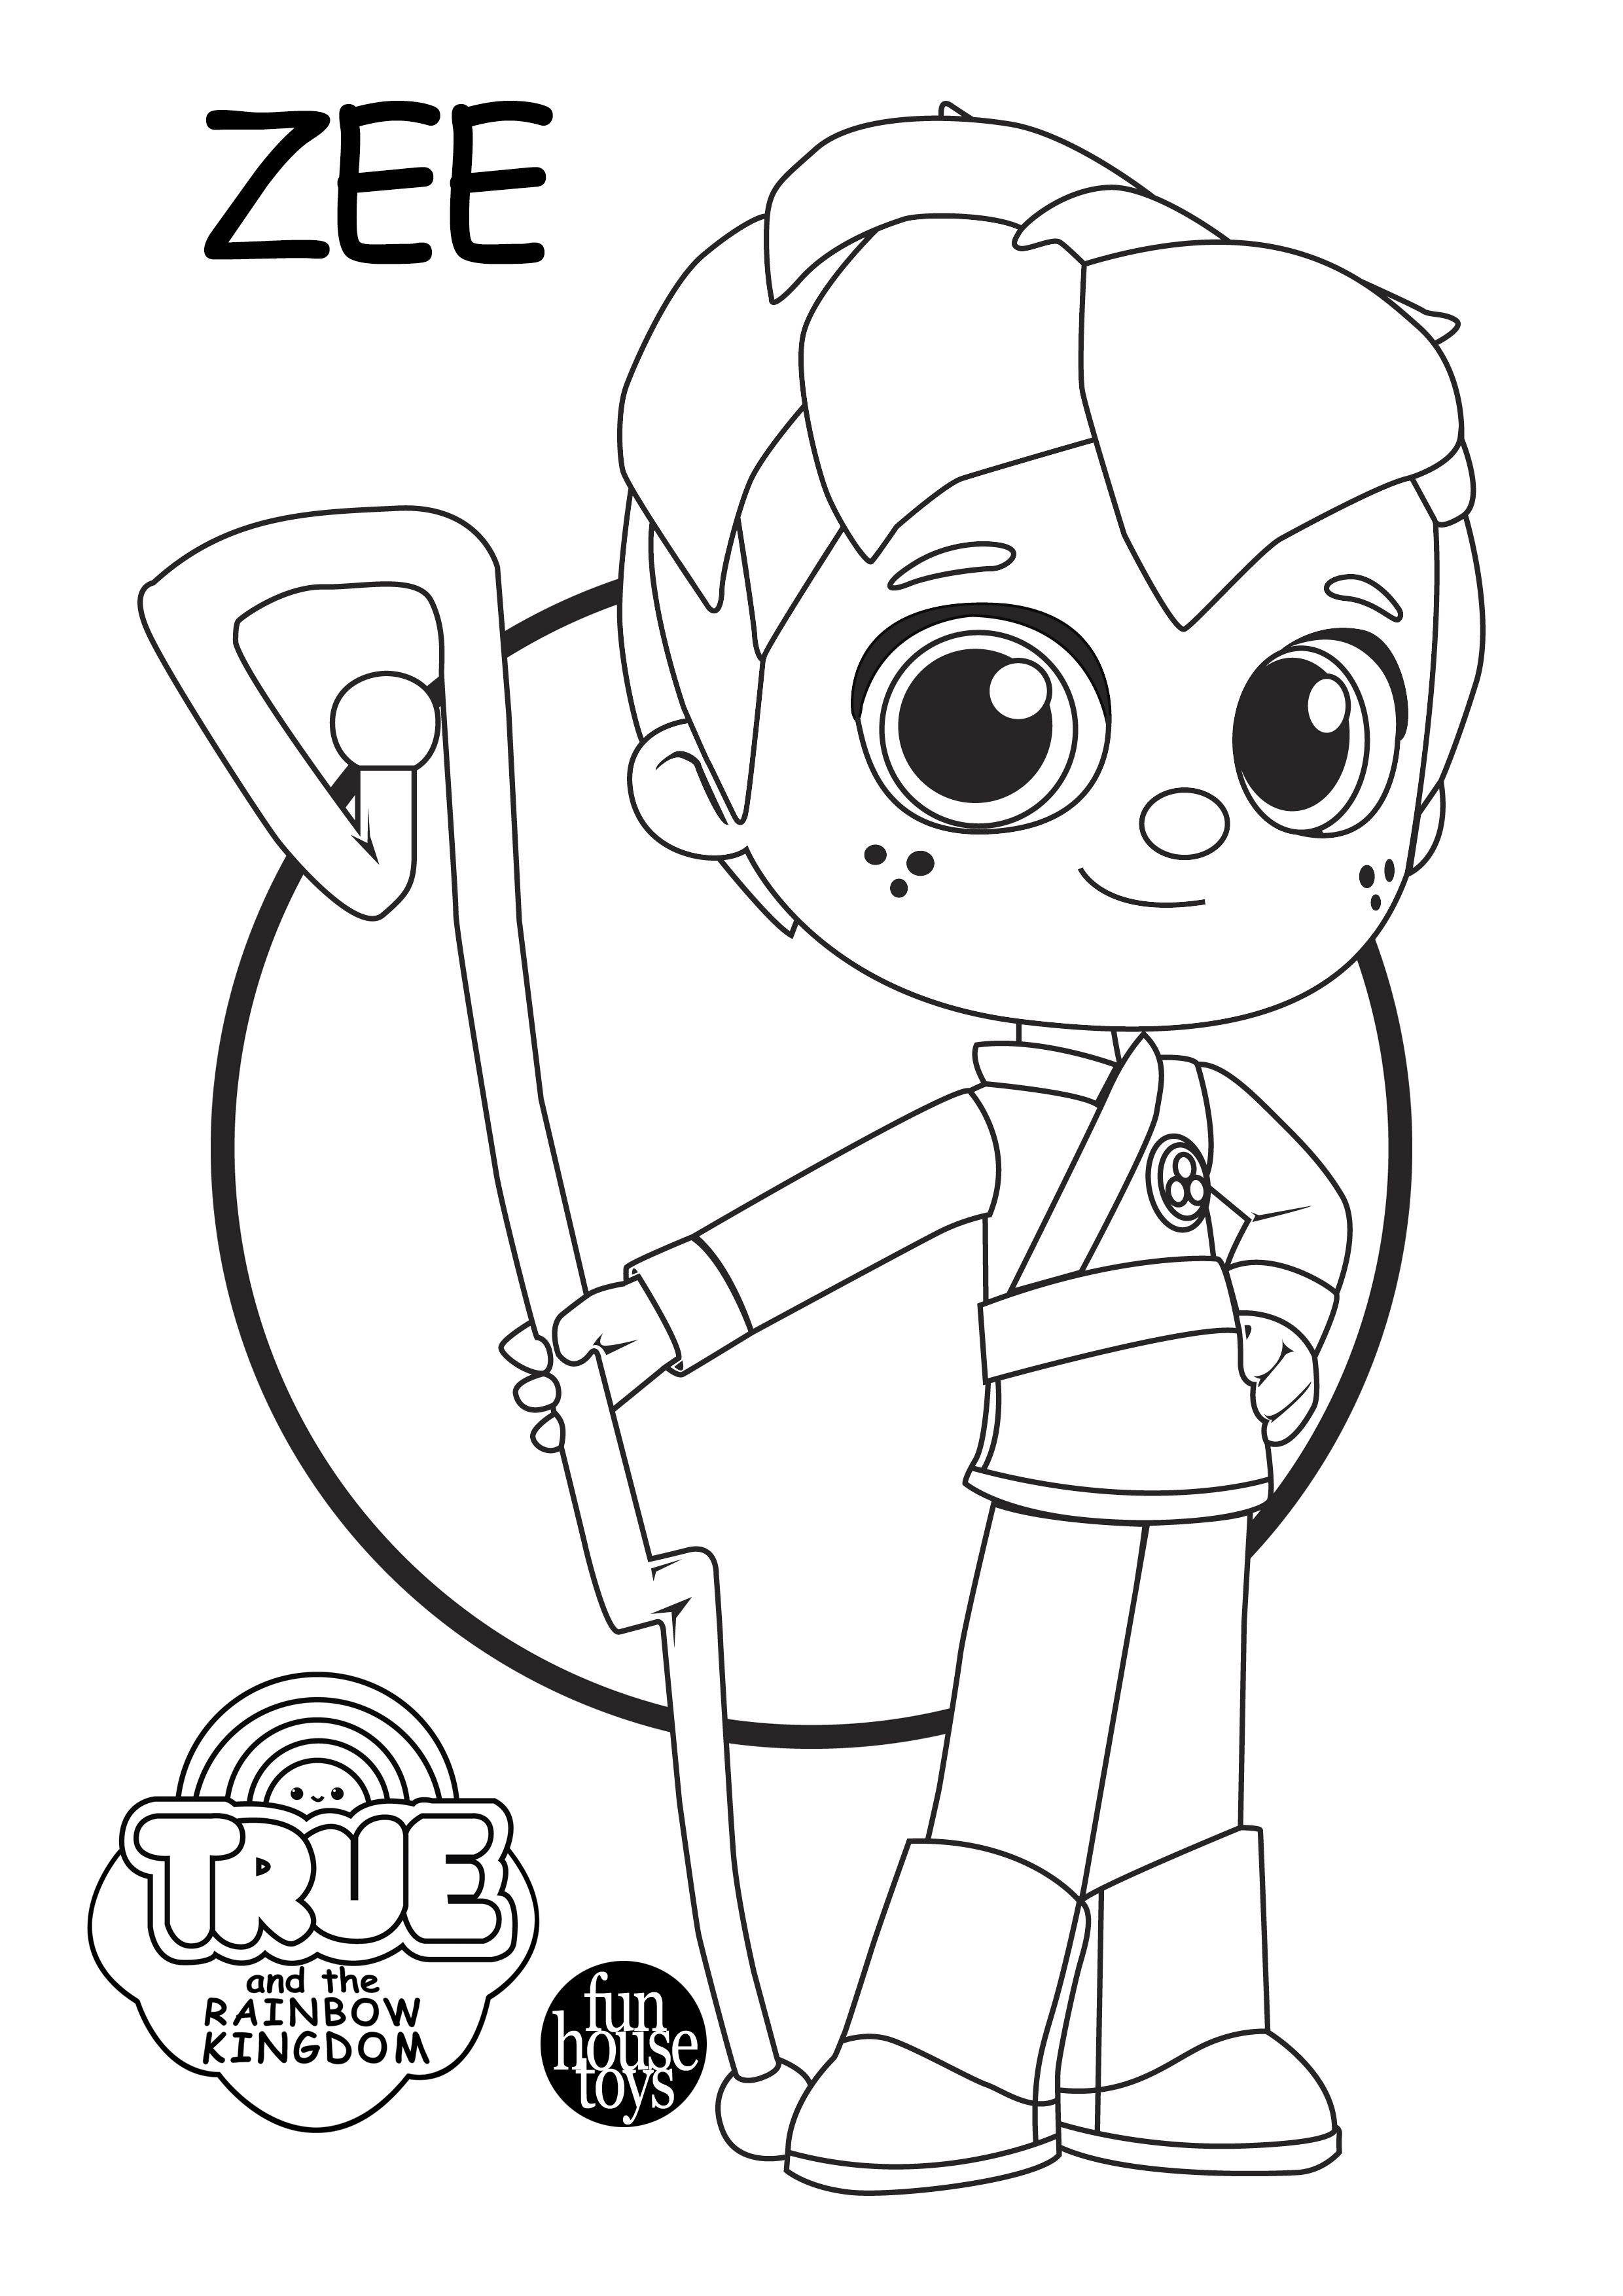 true and the rainbow kingdom coloring pages Pin by Tracy Bonham on embroidery | Pinterest | Birthday, 3rd  true and the rainbow kingdom coloring pages